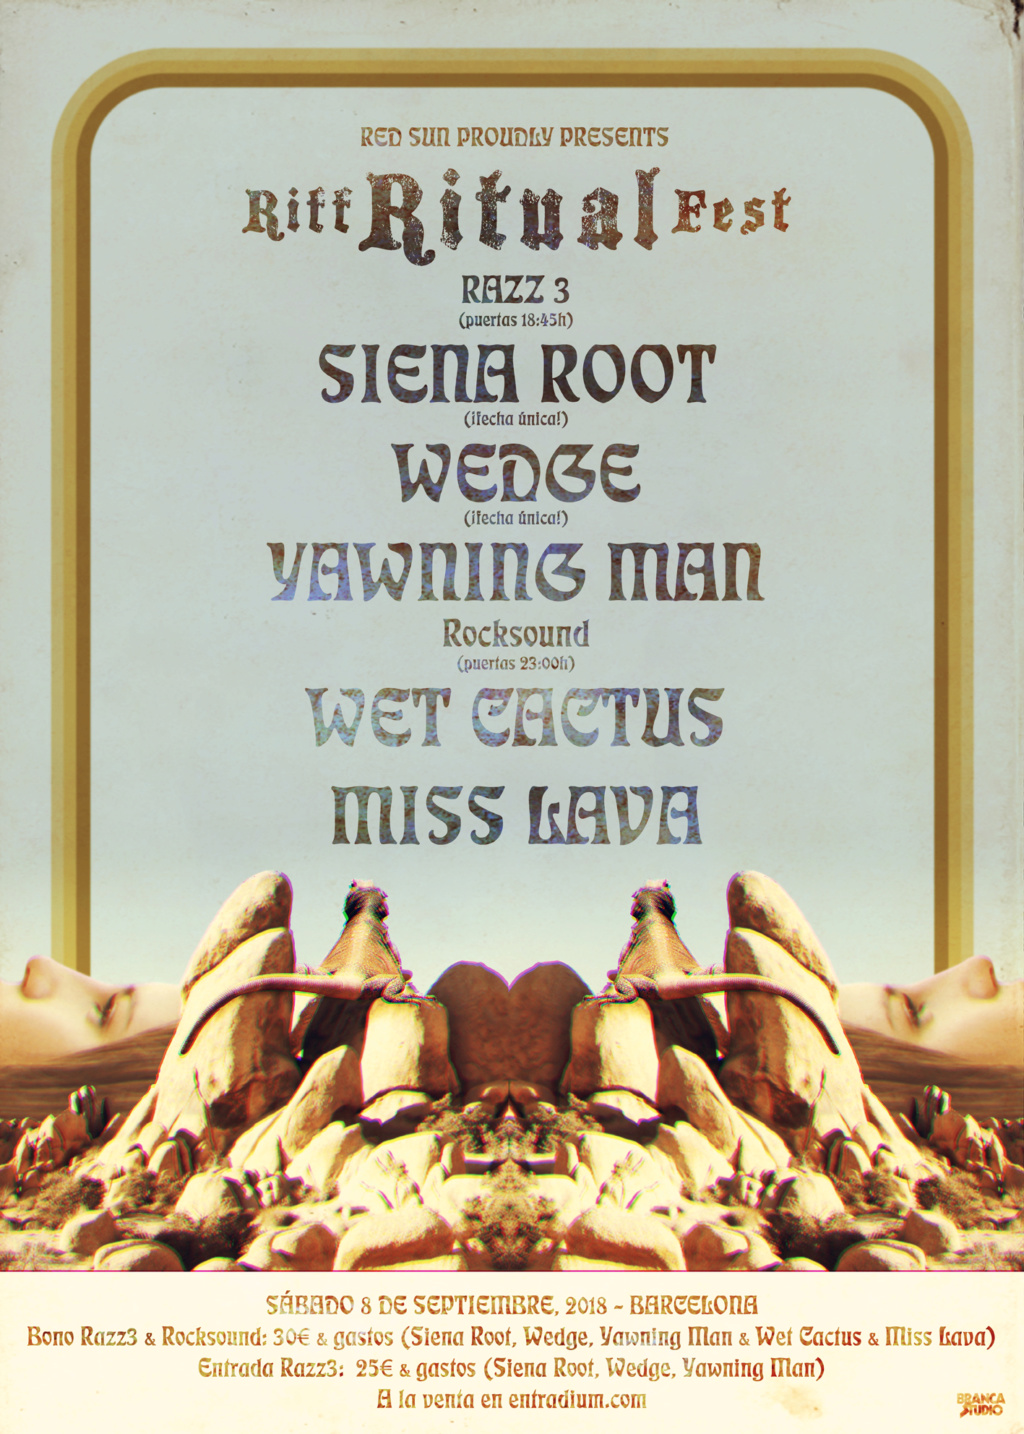 RIFF RITUAL FEST Vol.4 / 8 sept - Siena Root, Wedge, Yawning Man, Wet Cactus, Miss Lava (BCN) Web10